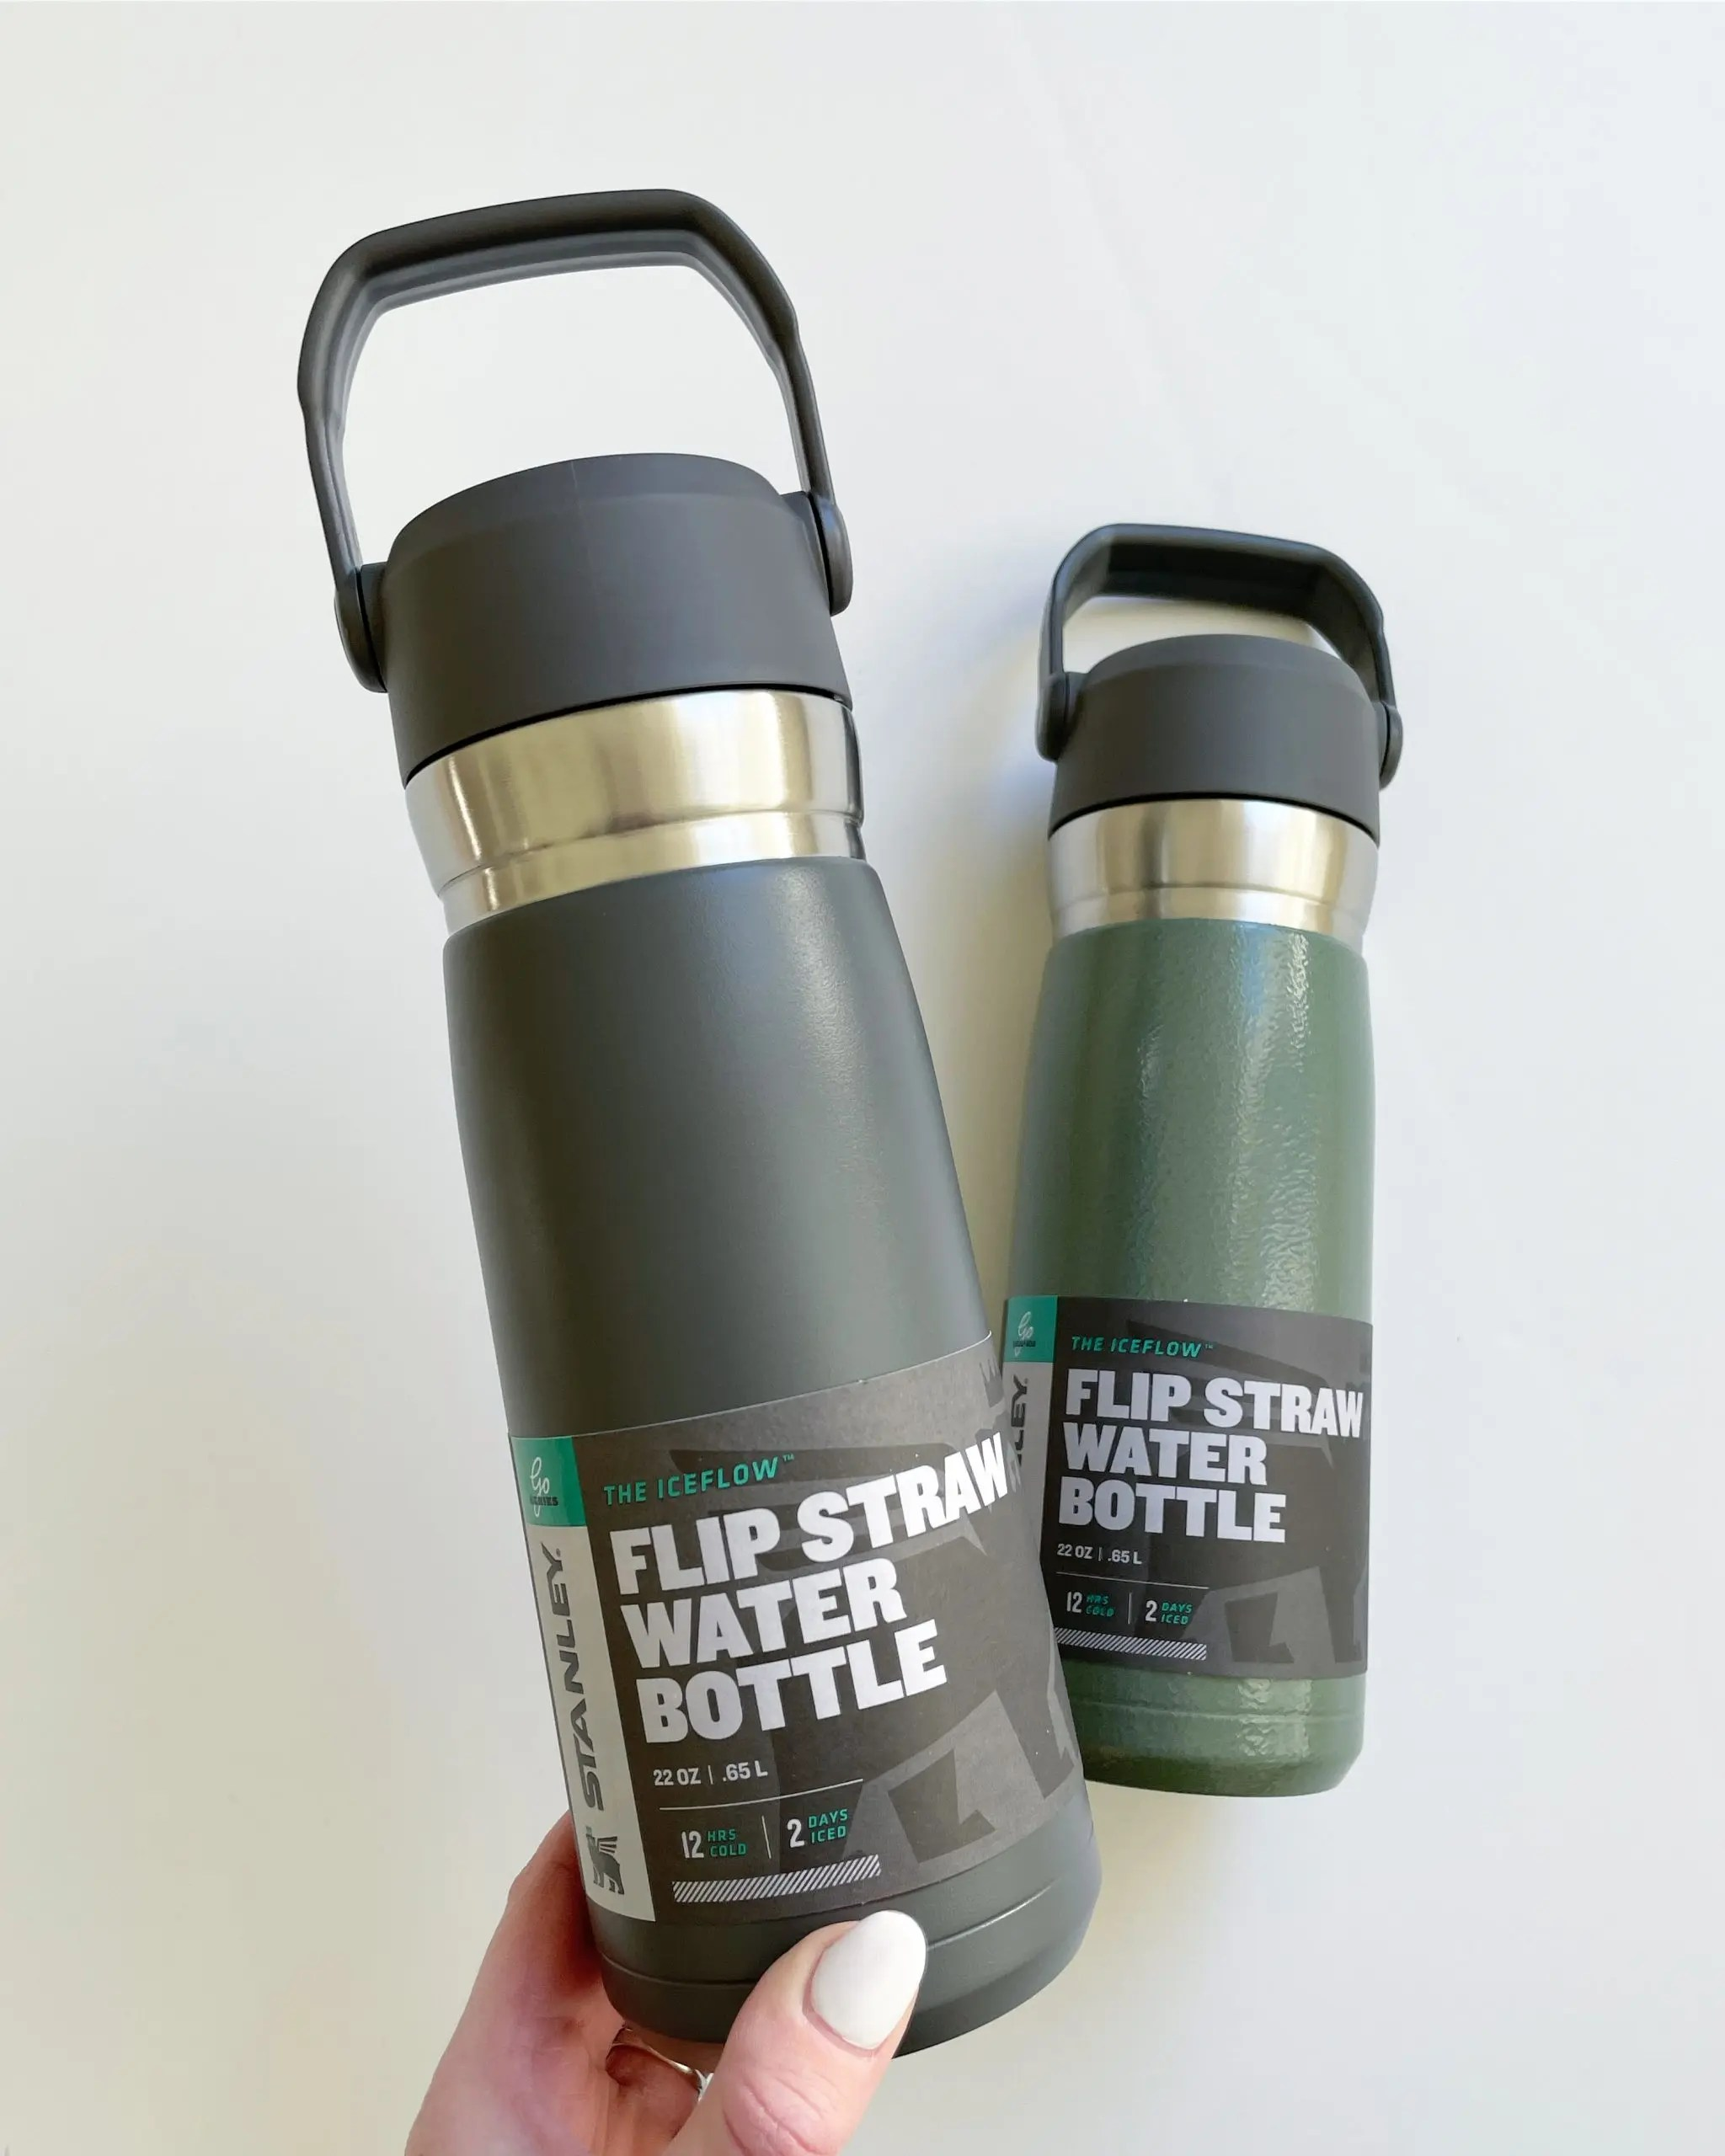 Stanley Flip Straw Water Bottle stainless steel insulated water bottle